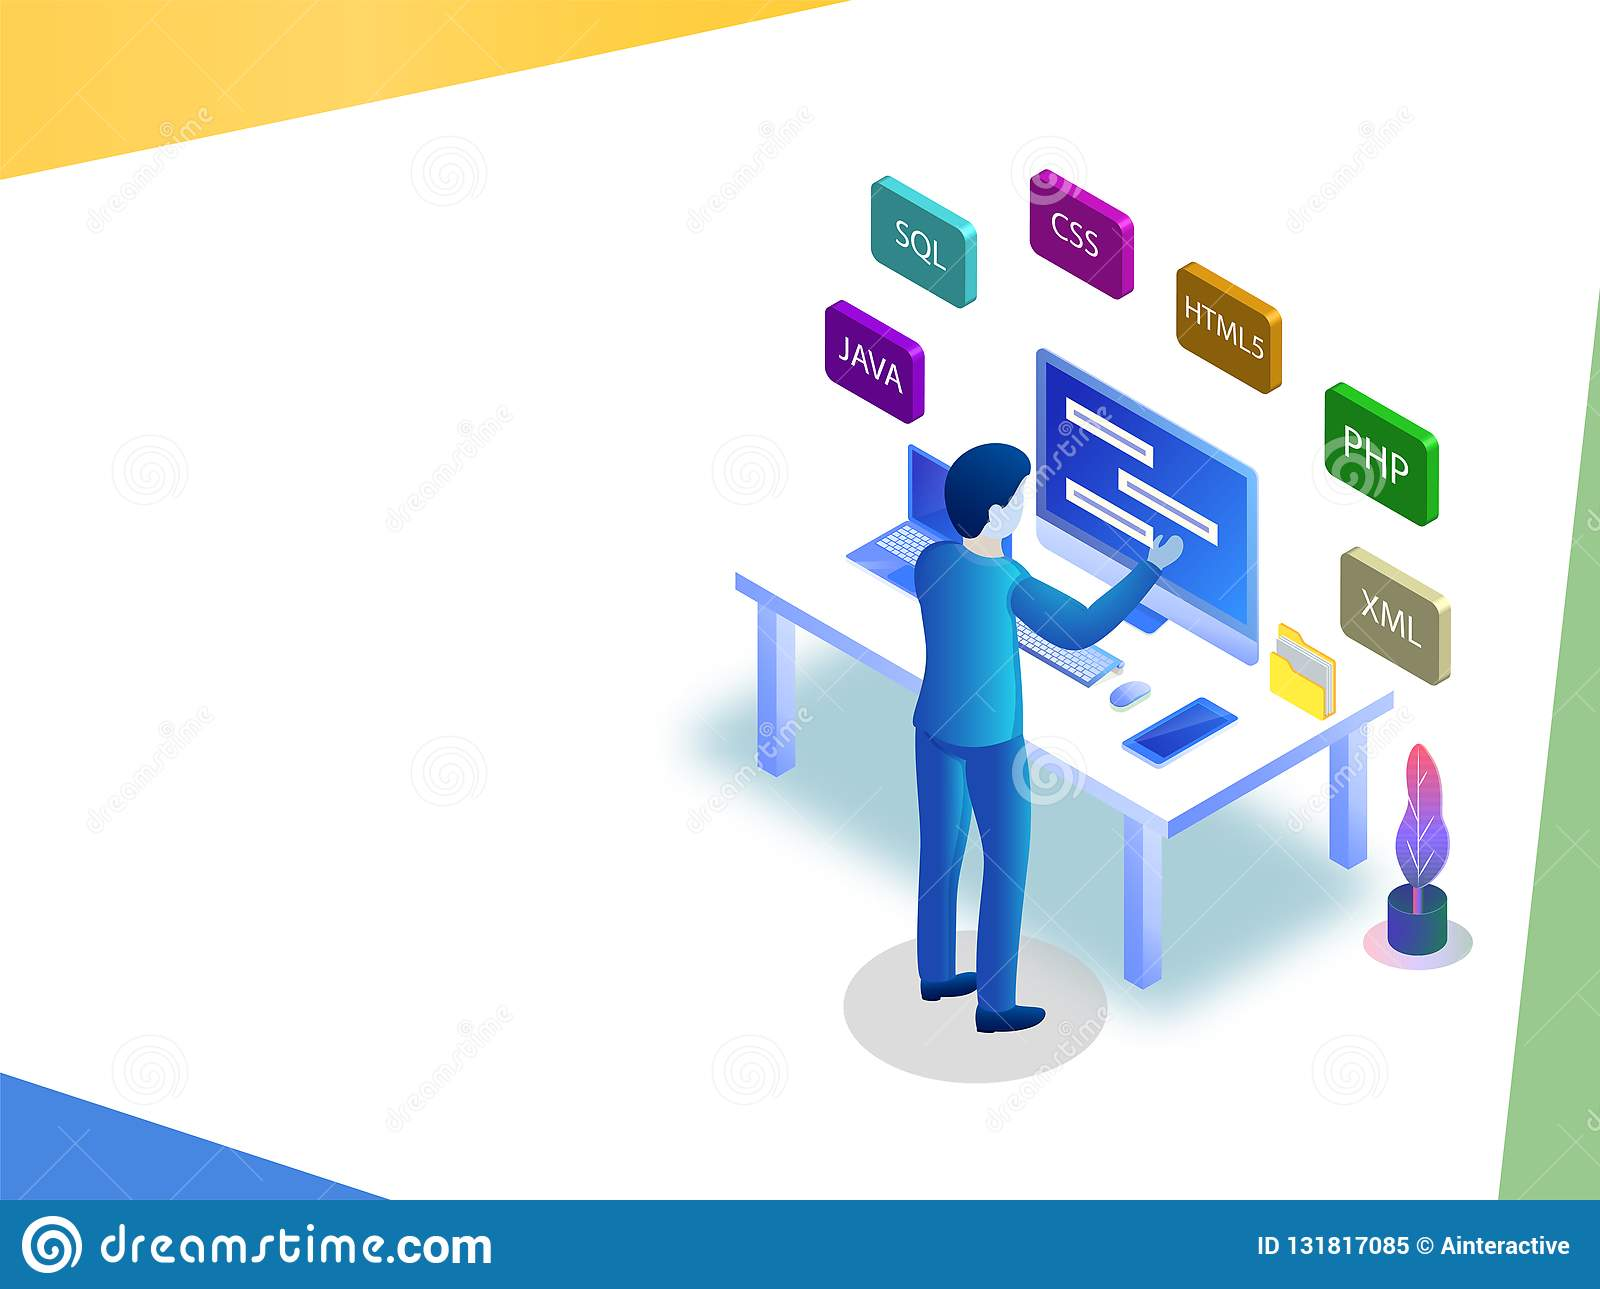 Software Development Or Programming Concept Based Isometric